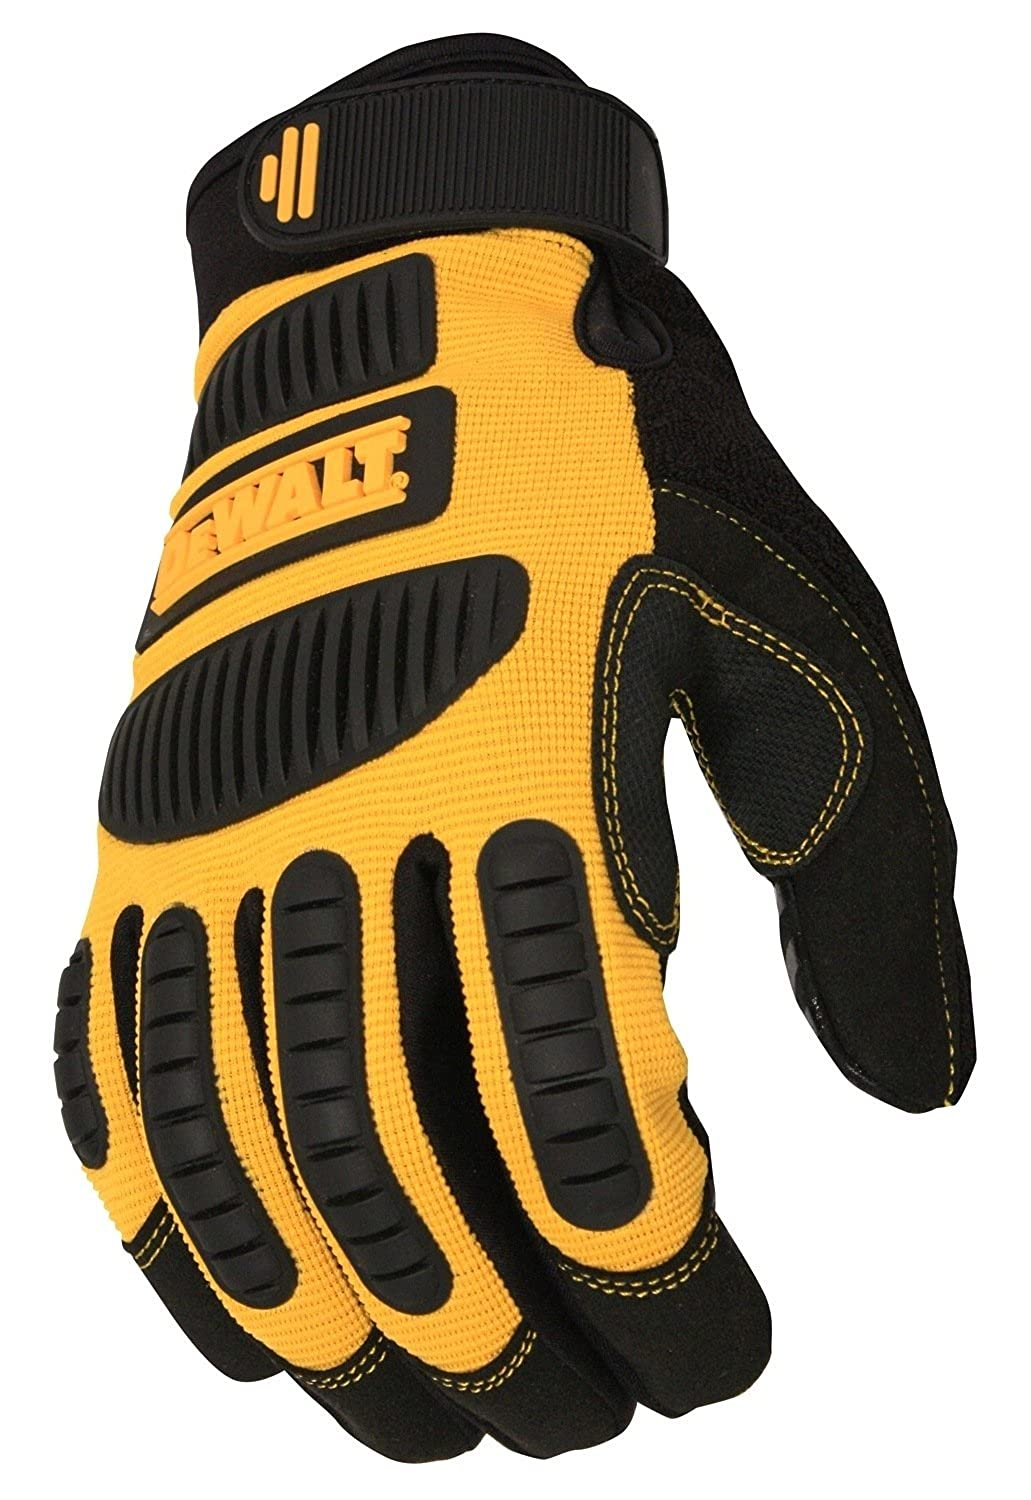 DeWalt High Performance Mechanics Work Gloves